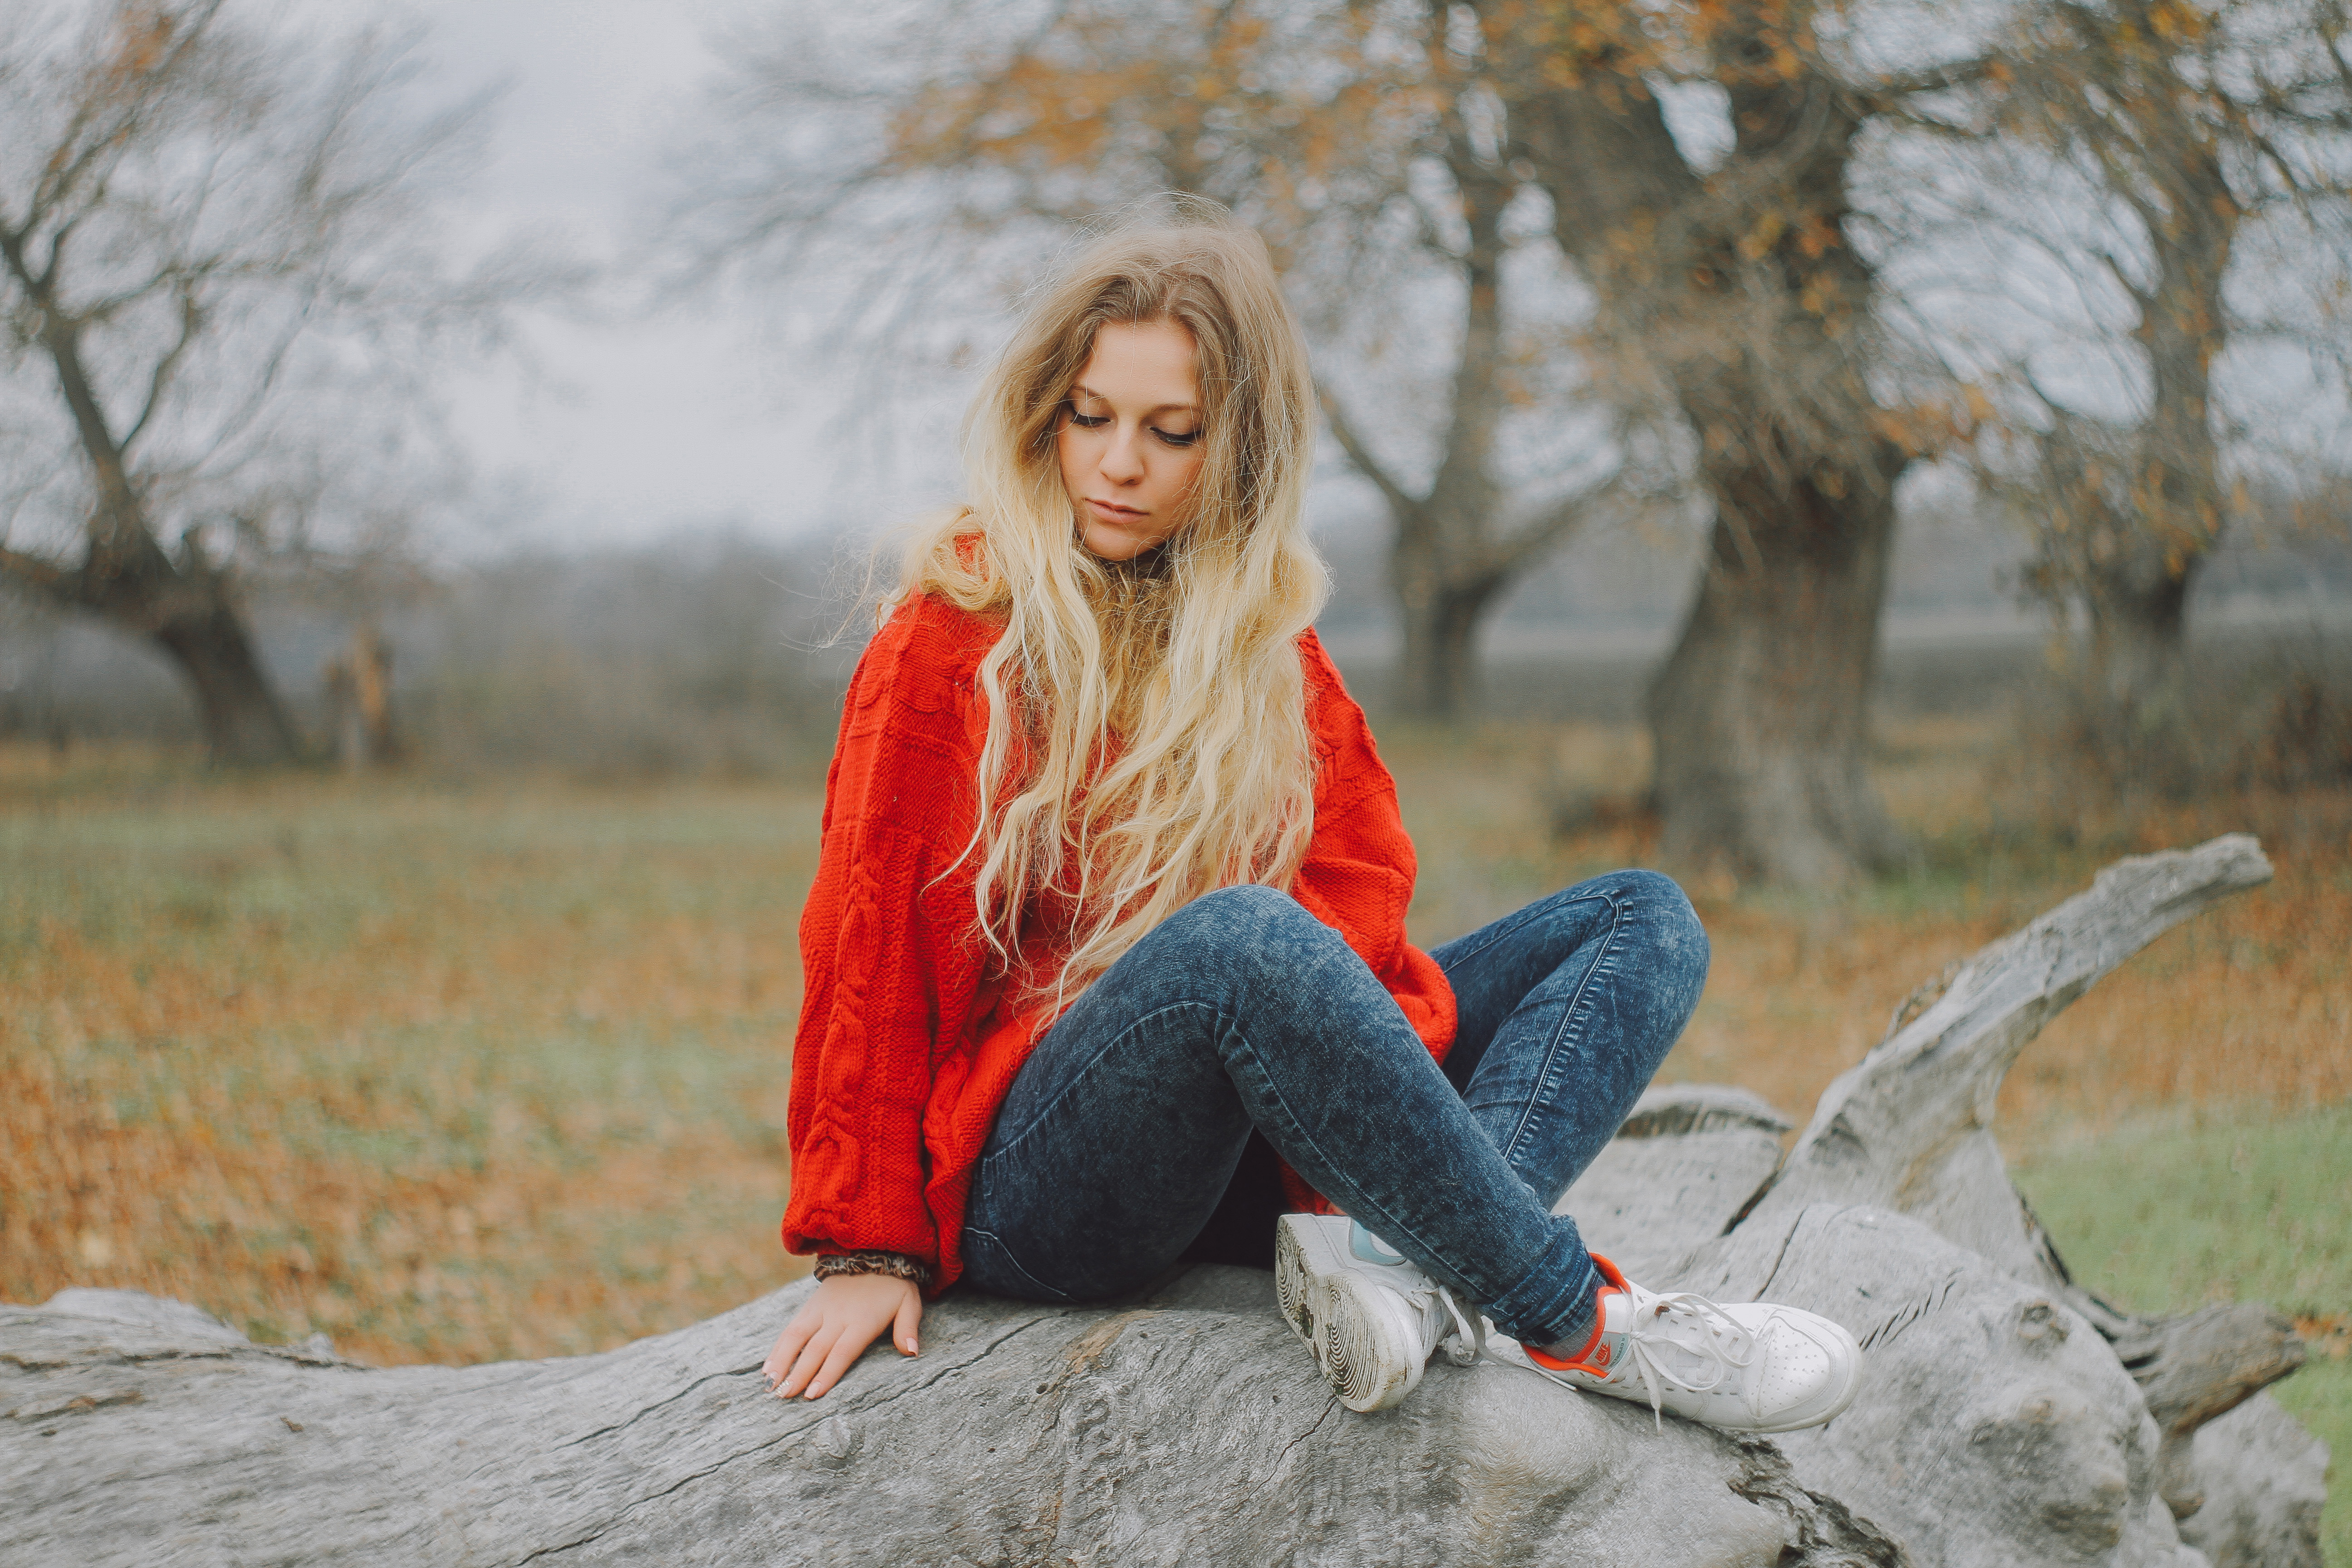 Woman In Red Sweater Sitting On Log Image Free Stock